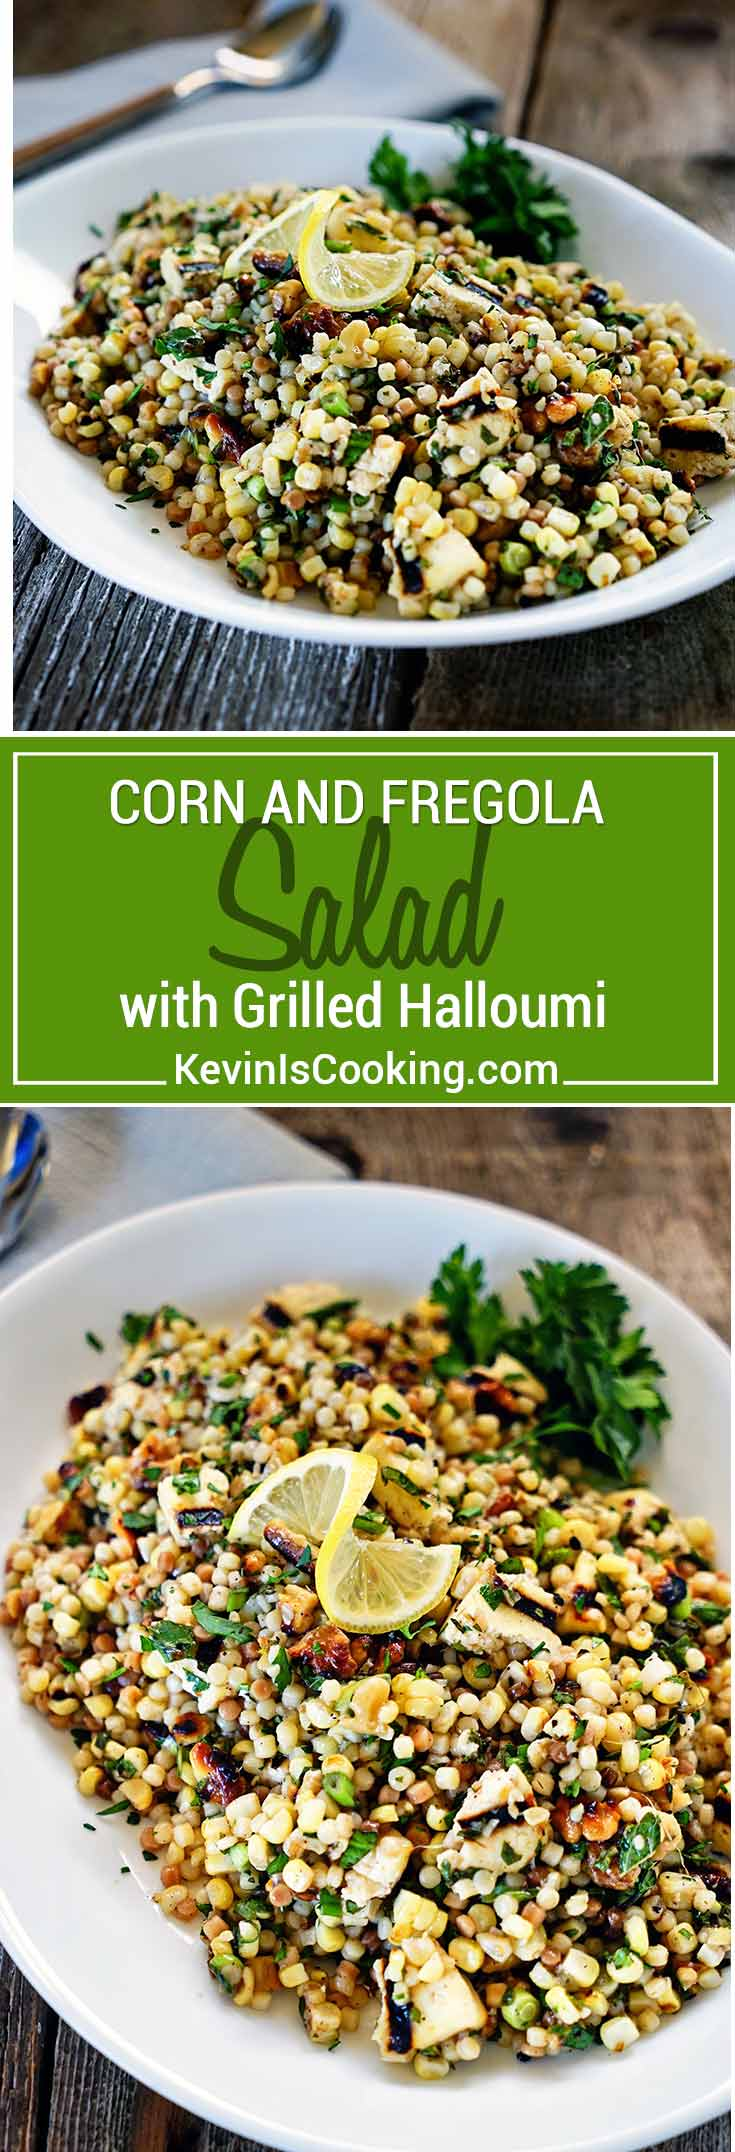 Toasted fregola (similar to Israeli couscous), charred corn, grilled Halloumi cheese, toasted walnuts, herbs and citrus make this one incredible side salad.